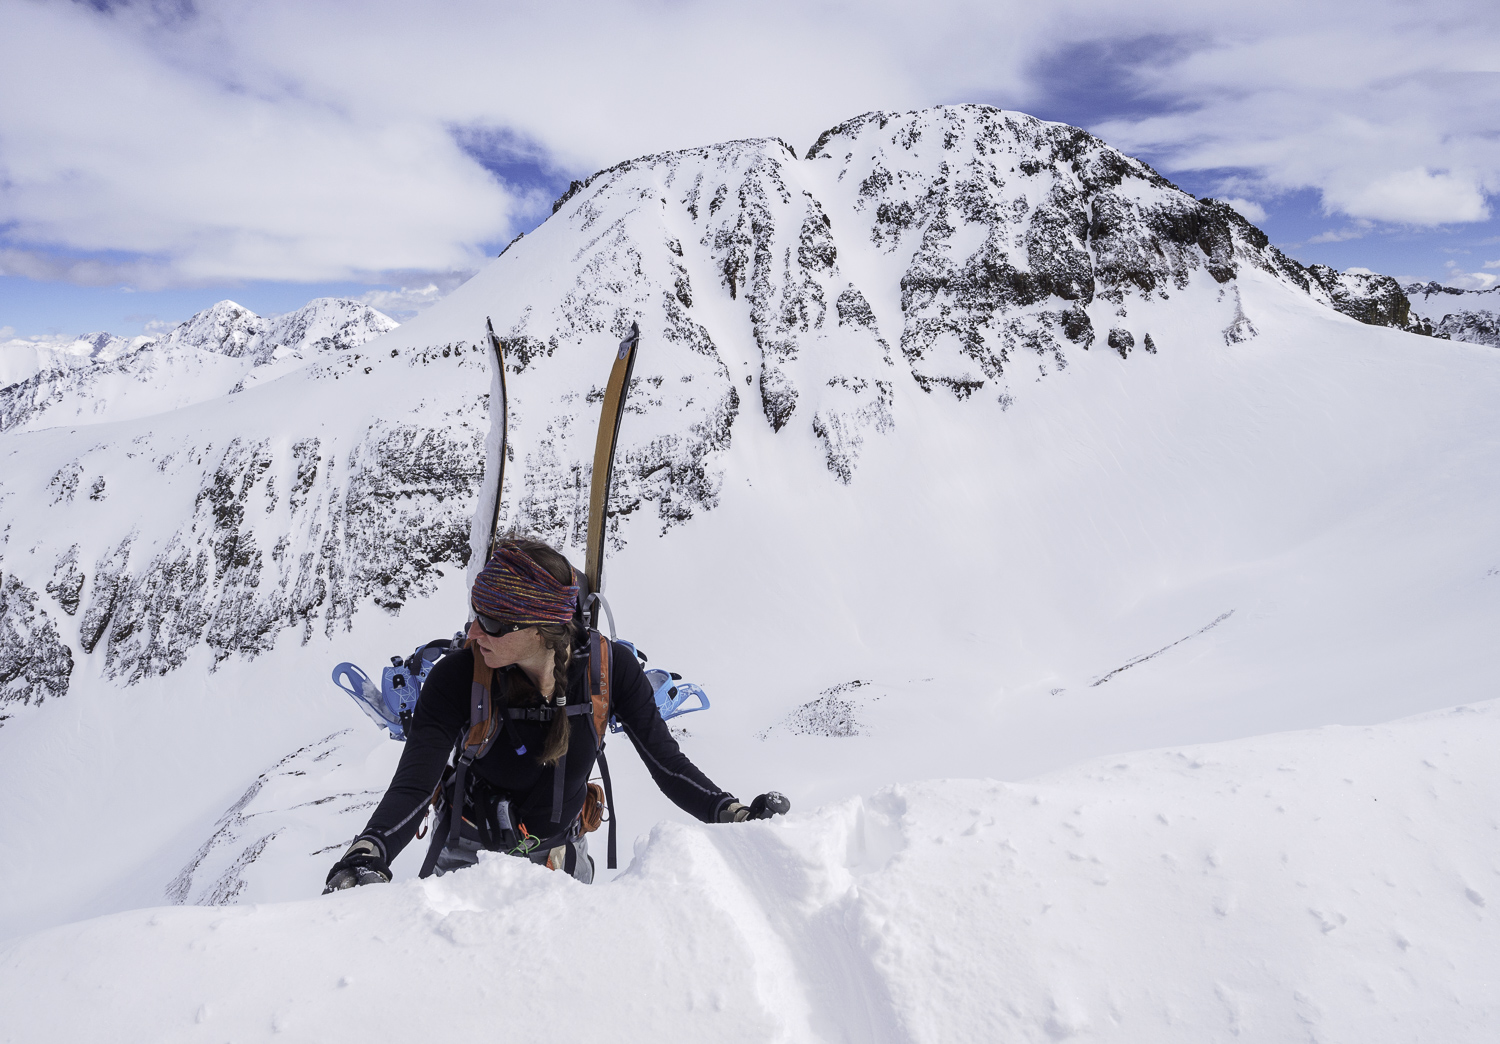 """Looking for the """"Illusion"""" Couloir - San Juan Range, CO"""